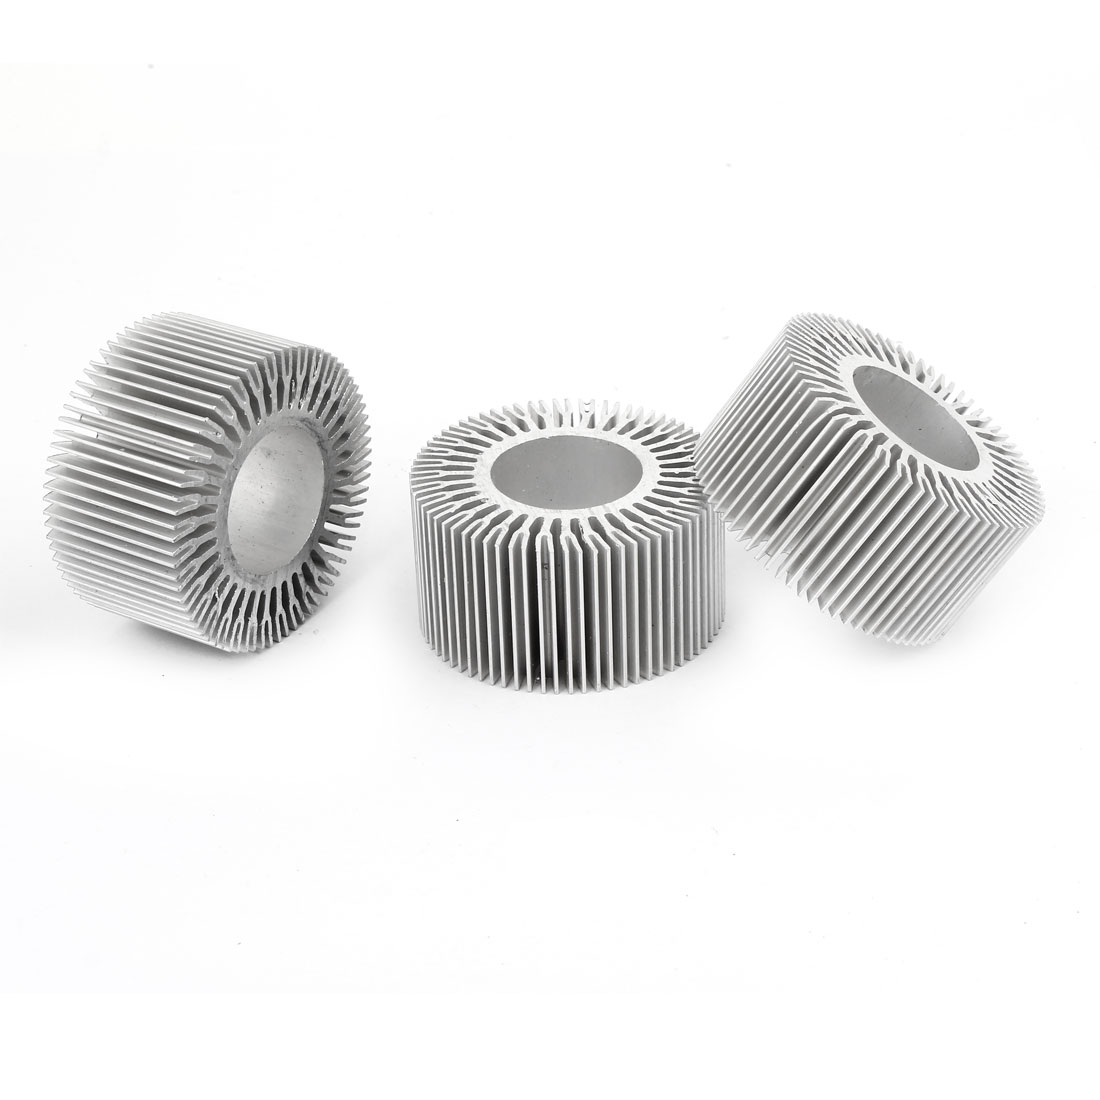 Led Light Lamp Aluminum Heat Sink Heatsink Radiator Cooling Fin 58mmx28mmx30mm Silver Tone 3 Pieces